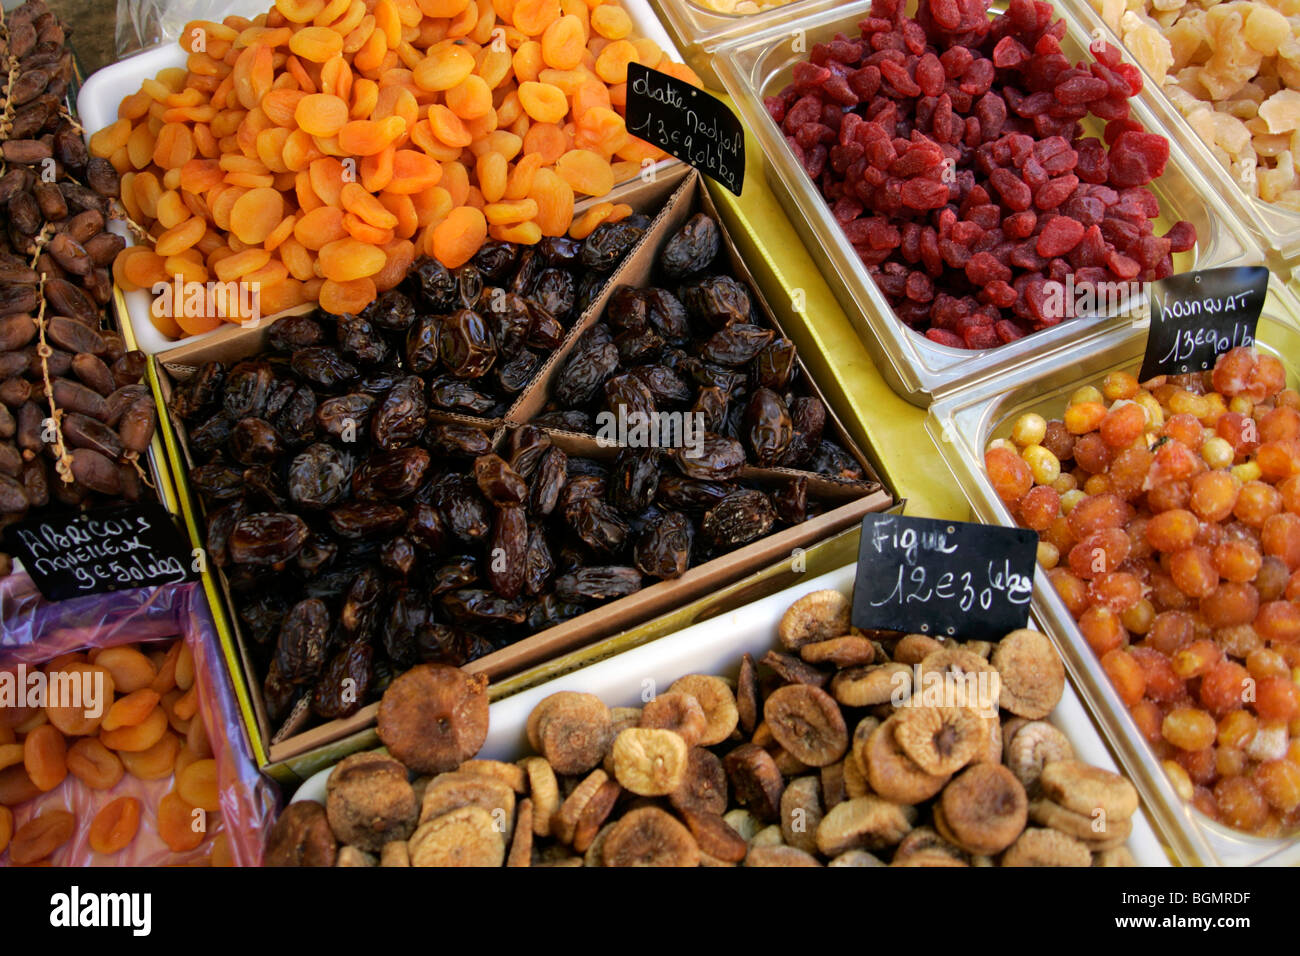 What do candied fruits do